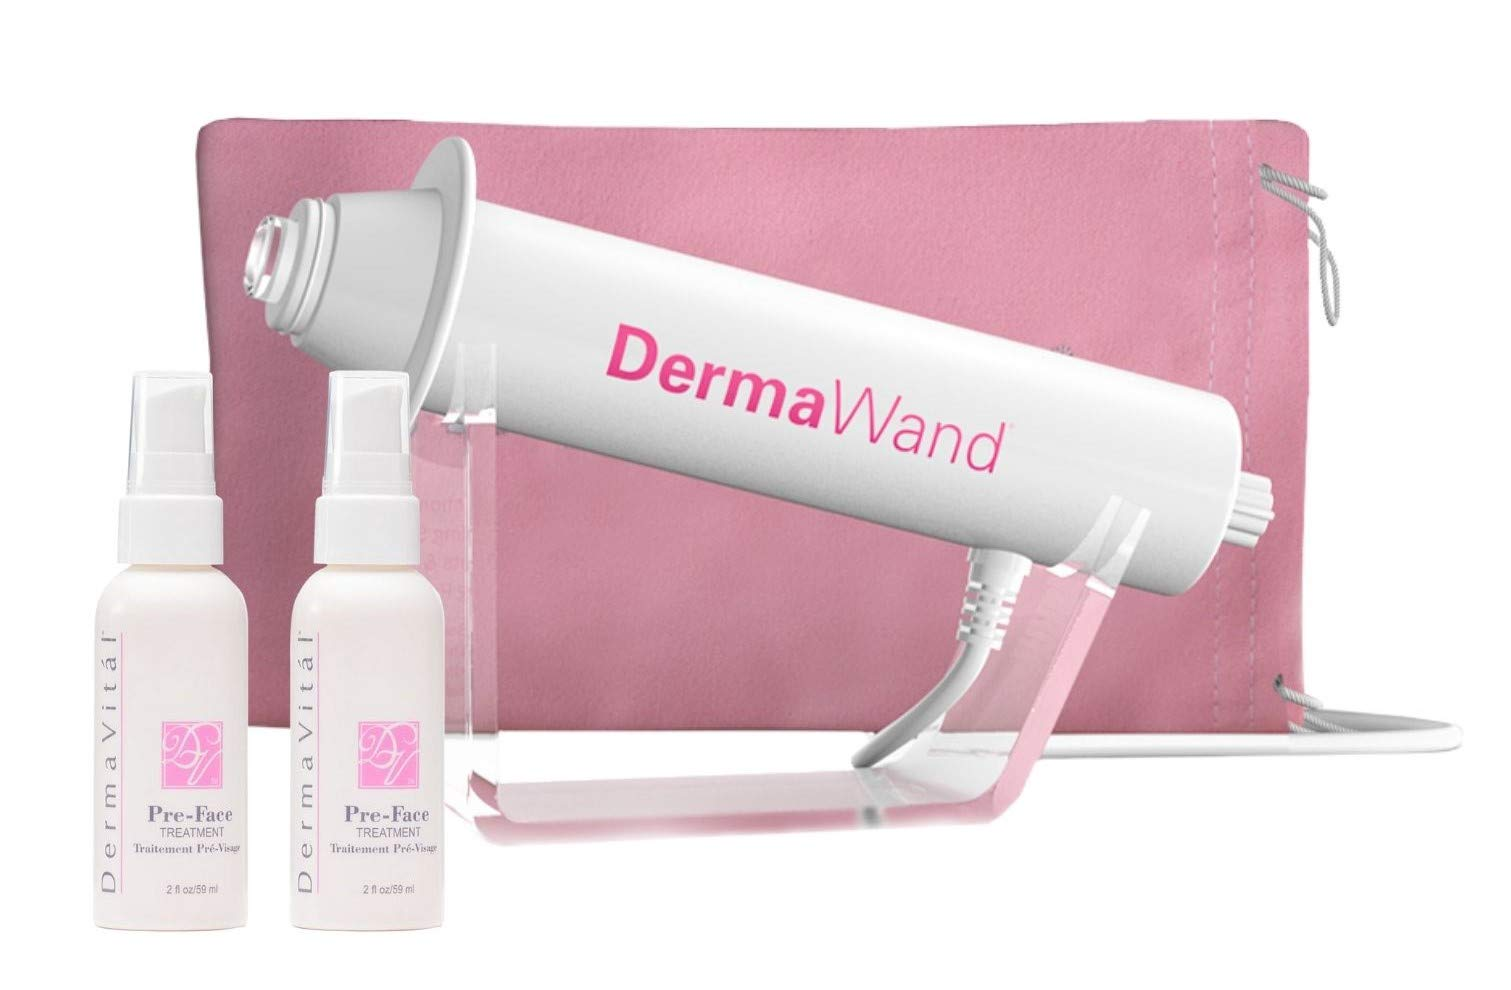 DermaWand Spanish Language Kit with 2 Preface Treatment - REDUCES WRINKLES by Dermawand